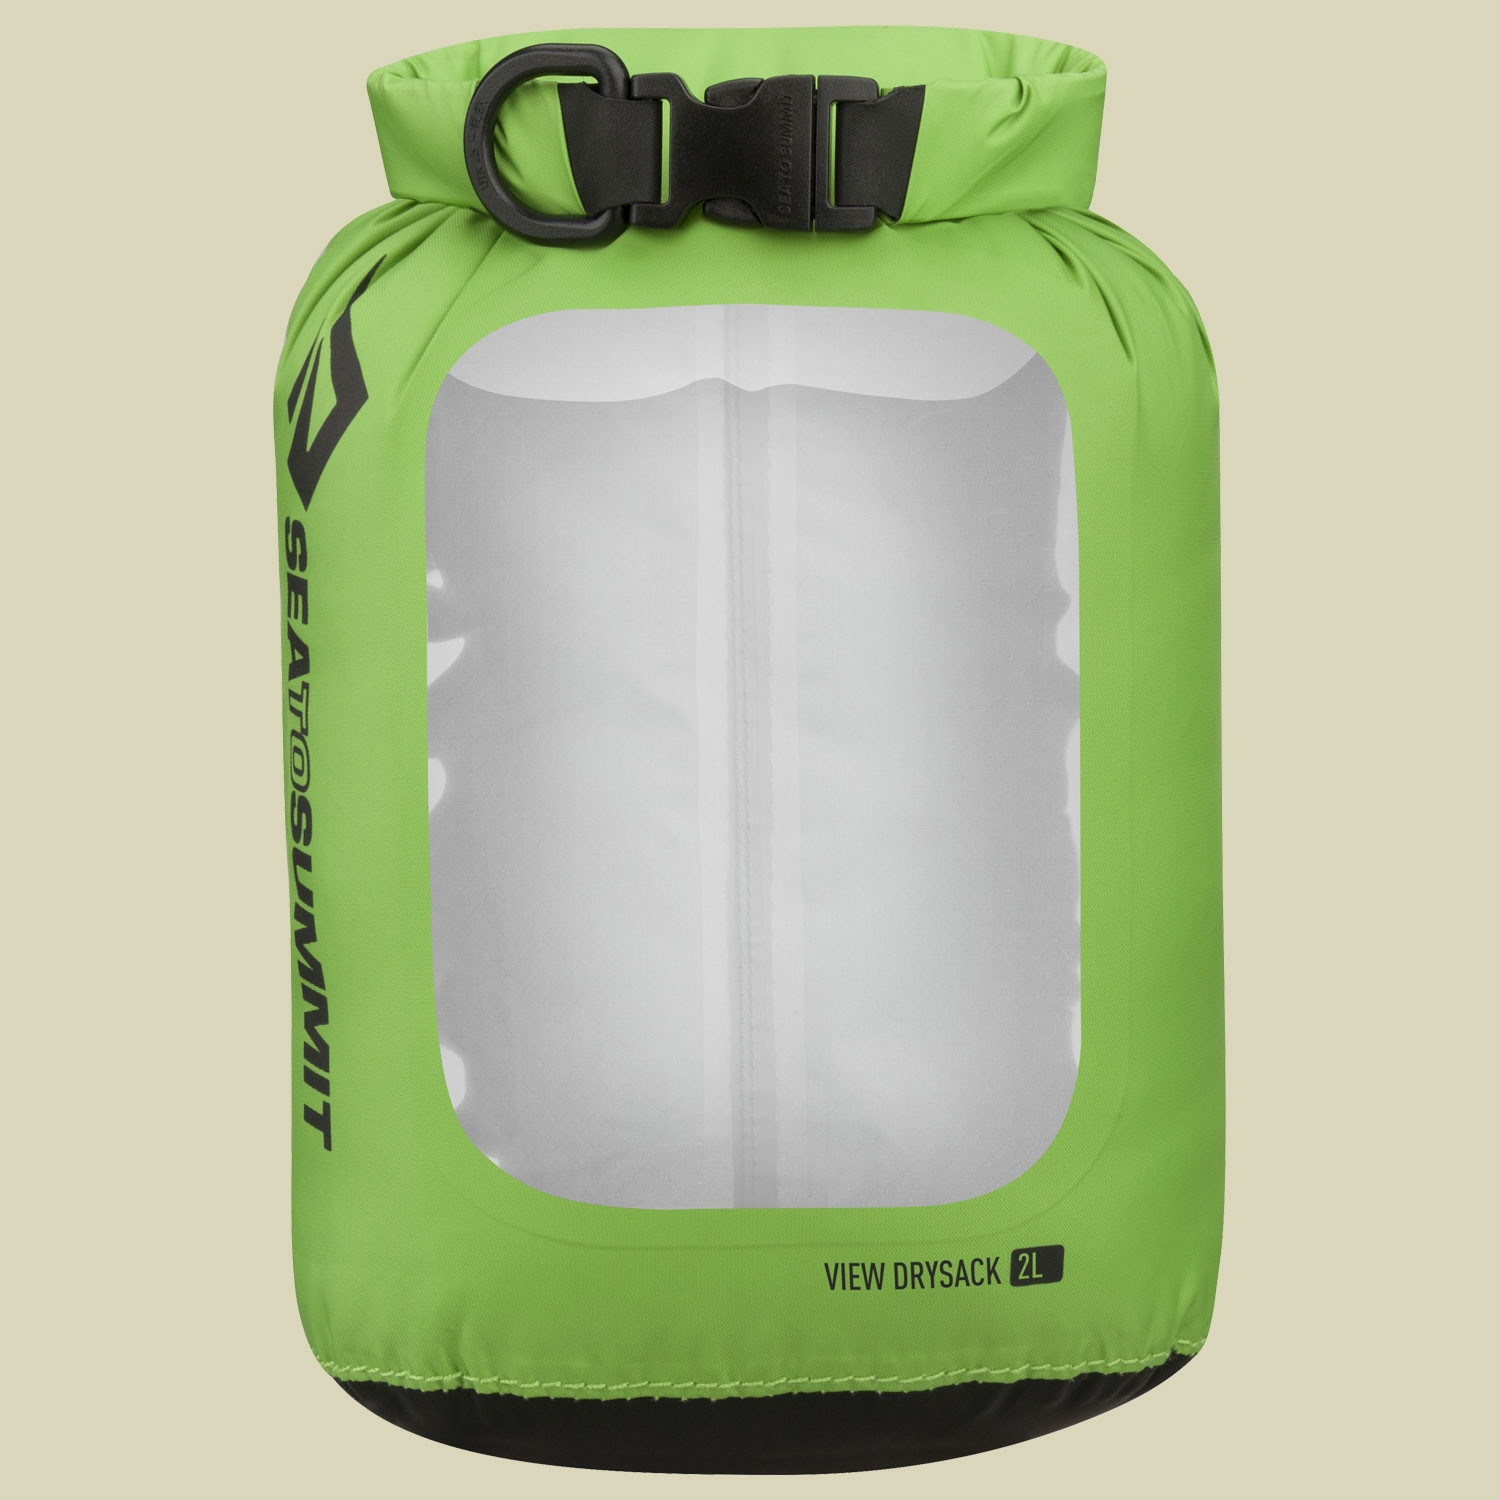 Sea to Summit View Dry Sack wasserdichter Packsack Volumen 1,0 apple green von Sea to Summit